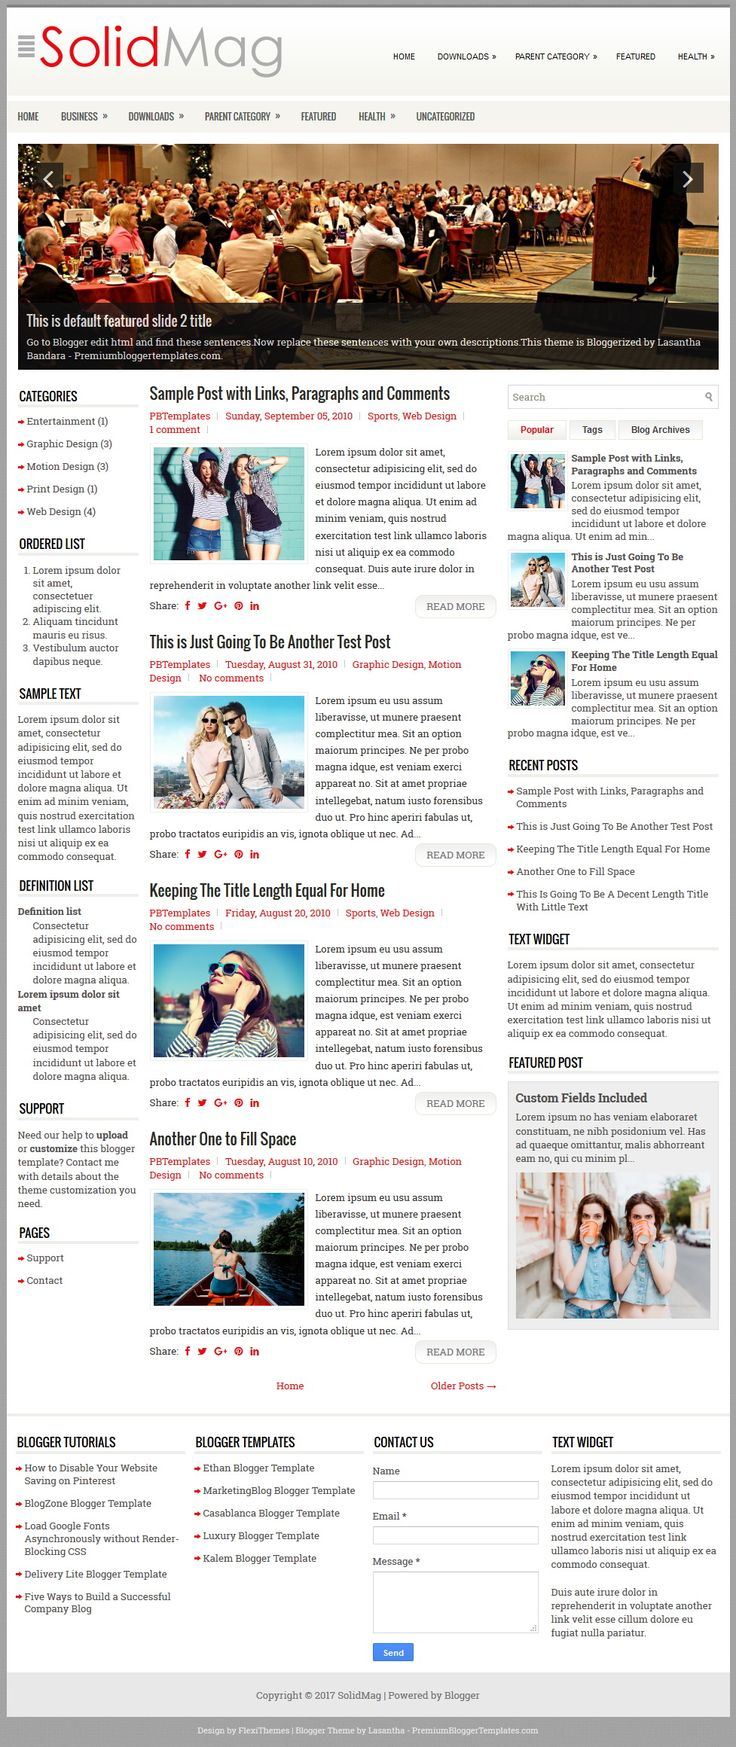 SolidMag Blogger Template:  SolidMag is an Elegant, Fully Responsive, 3 Columns Blogger Template for News/Magazine Blogs. SolidMag Blogger Template has a Featured Content Slider, 2 Navigation Menus, Related Posts with Thumbnails, Breadcrumb, Social and Share Buttons, Left and Right Sidebars, 4 Columns Footer, Google Fonts, Tabbed Widget and More Features.  https://www.premiumbloggertemplates.com/solidmag-blogger-template/